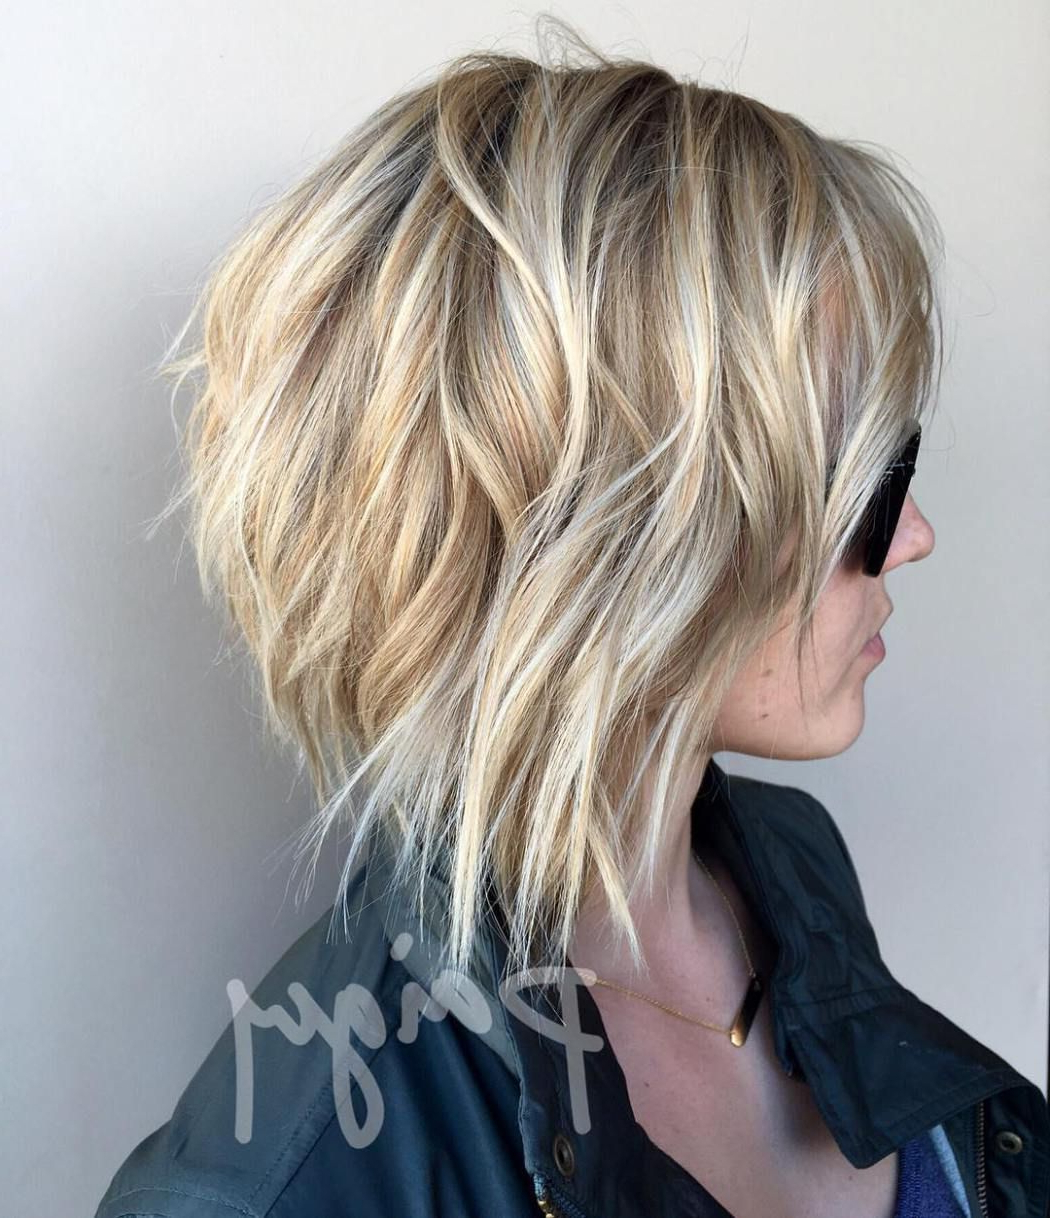 70 Fabulous Choppy Bob Hairstyles In 2018 | Hairstyles | Pinterest Pertaining To Choppy Golden Blonde Balayage Bob Hairstyles (Gallery 3 of 25)